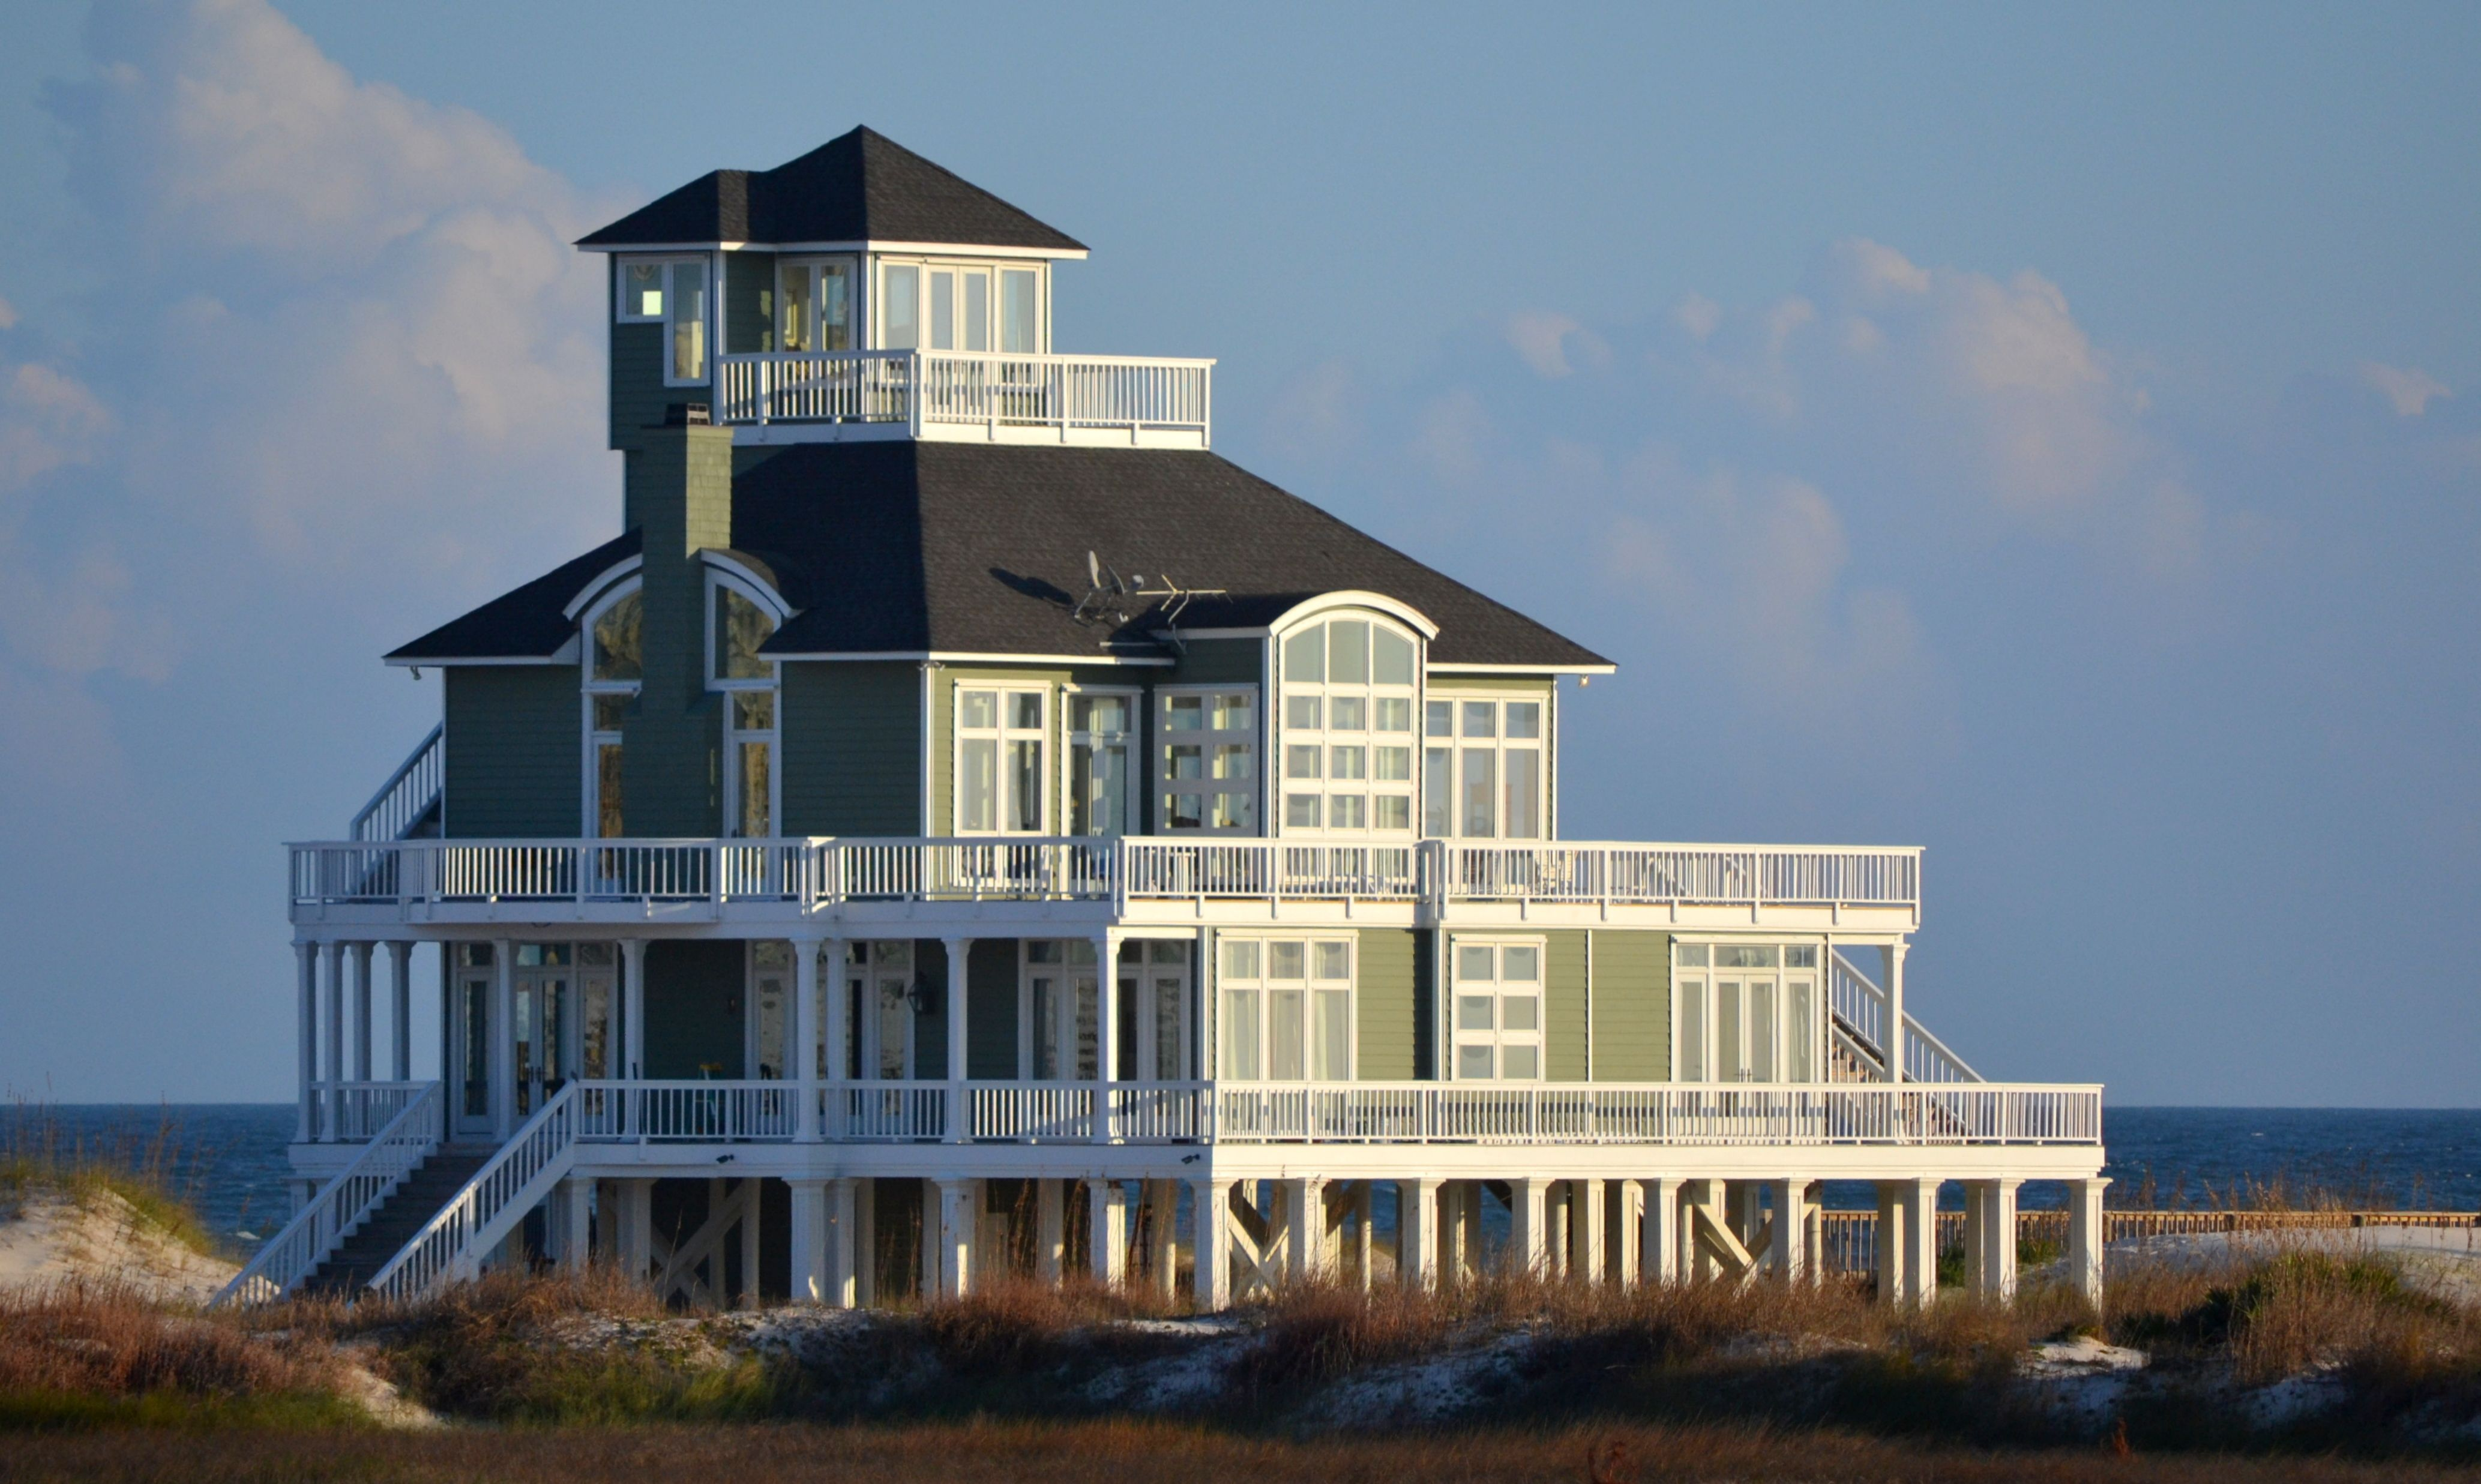 Pictures of houses on the beach - Beach House Google Search